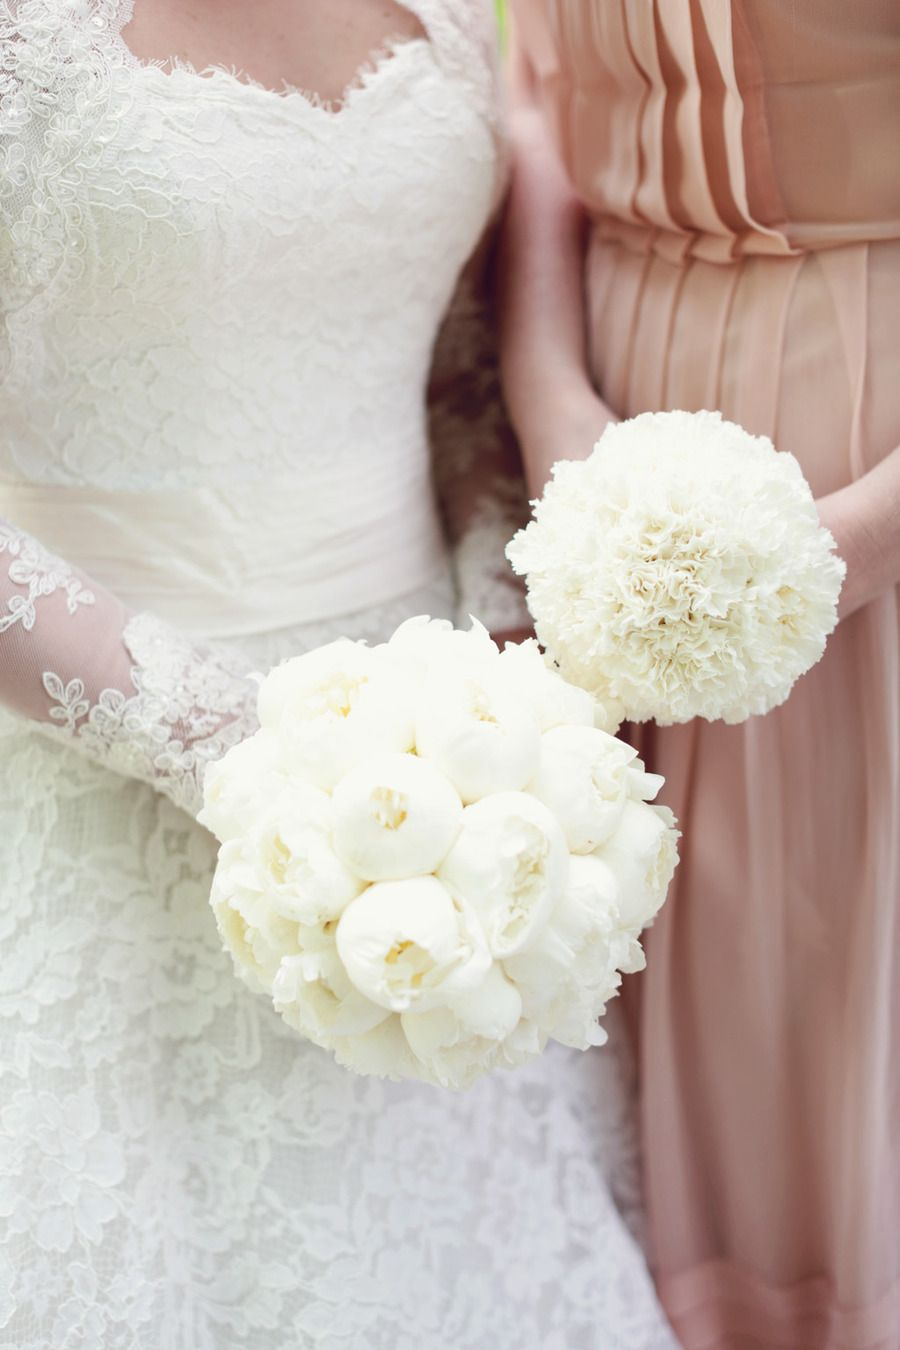 Salzburg, Austria Wedding from peaches & mint | #Peony | #Bouquet |   Read more - http://www.stylemepretty.com/destination-weddings/2013/11/13/salzburg-austria-wedding-from-peaches-mint/